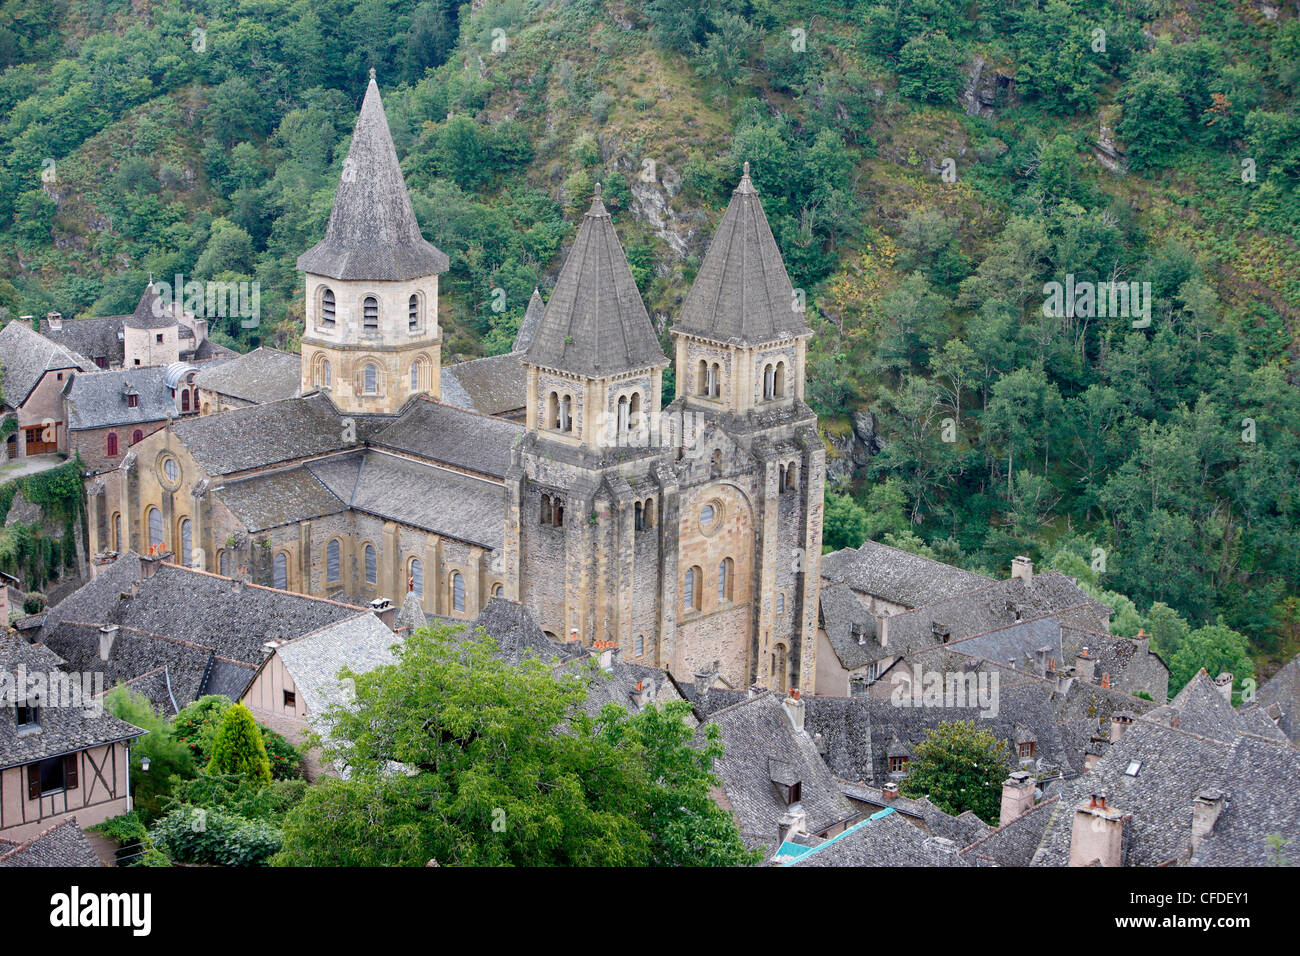 Sainte Foy Abbey church, Conques, Aveyron, Massif Central, France, Europe - Stock Image